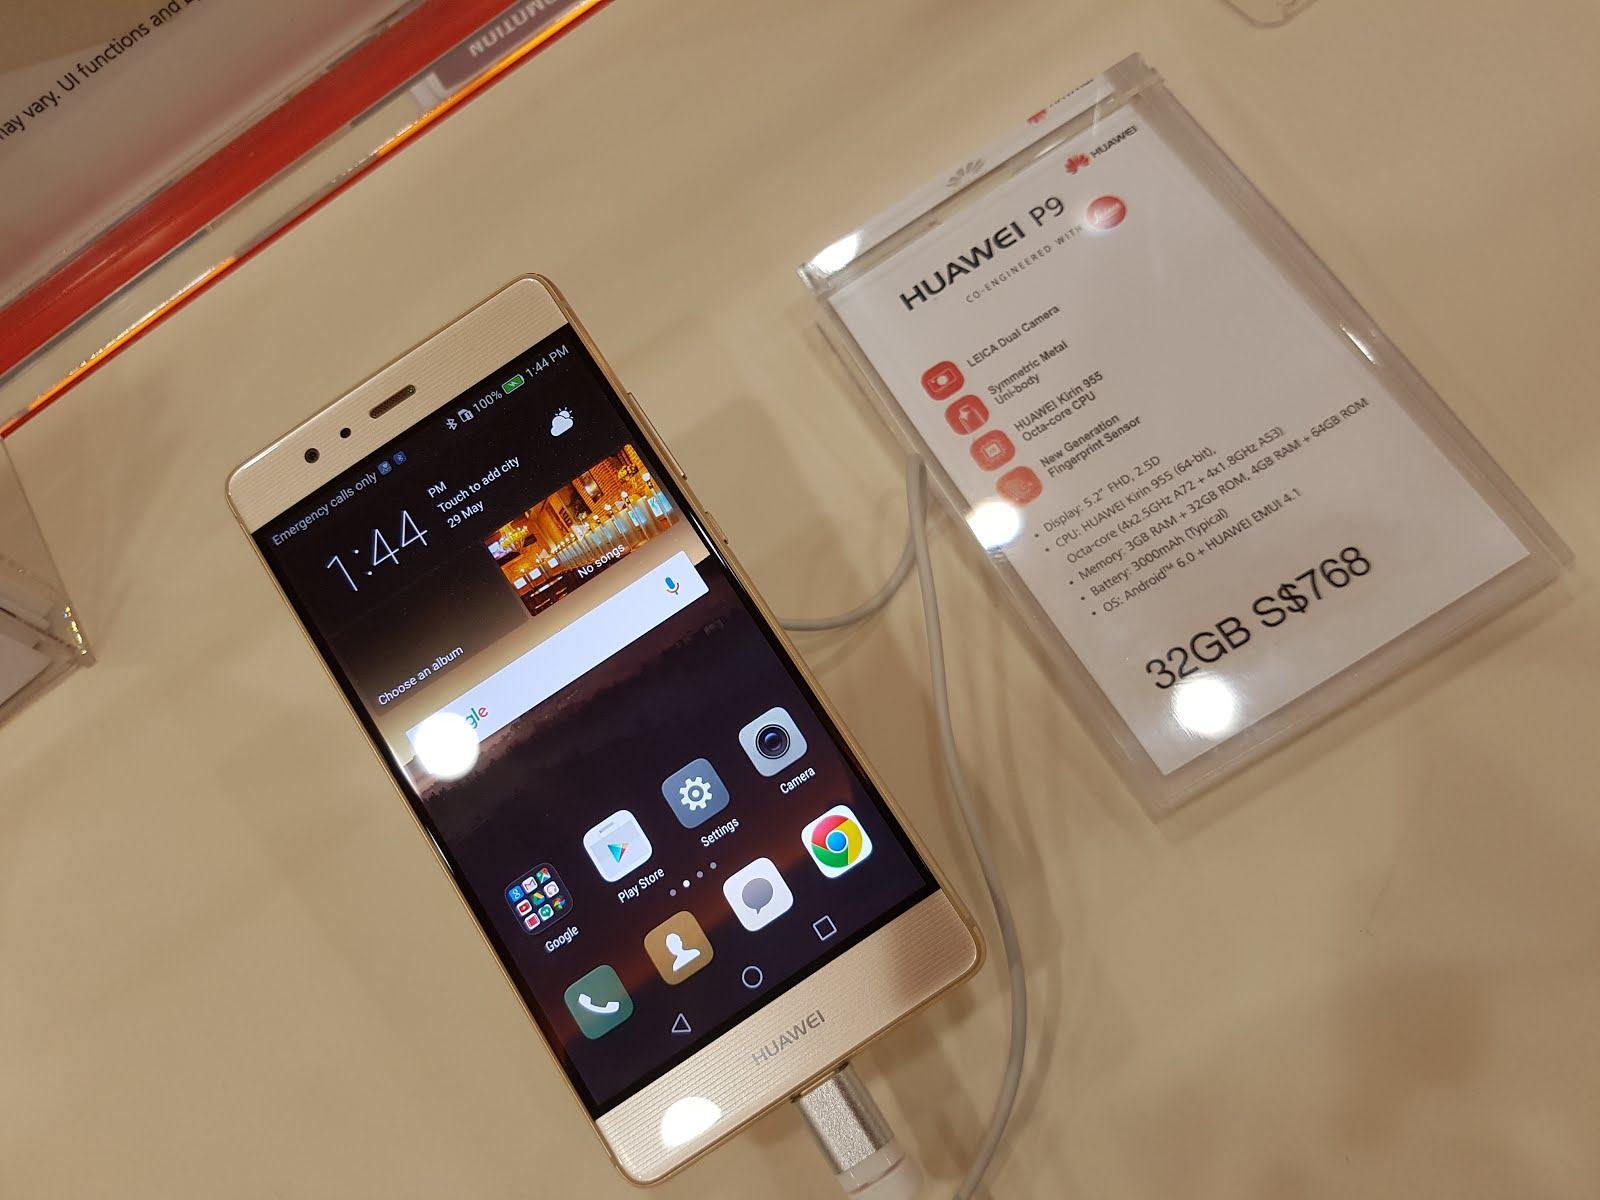 Huawei P9: Hands-On! | The Singapore Gadget Talk Show